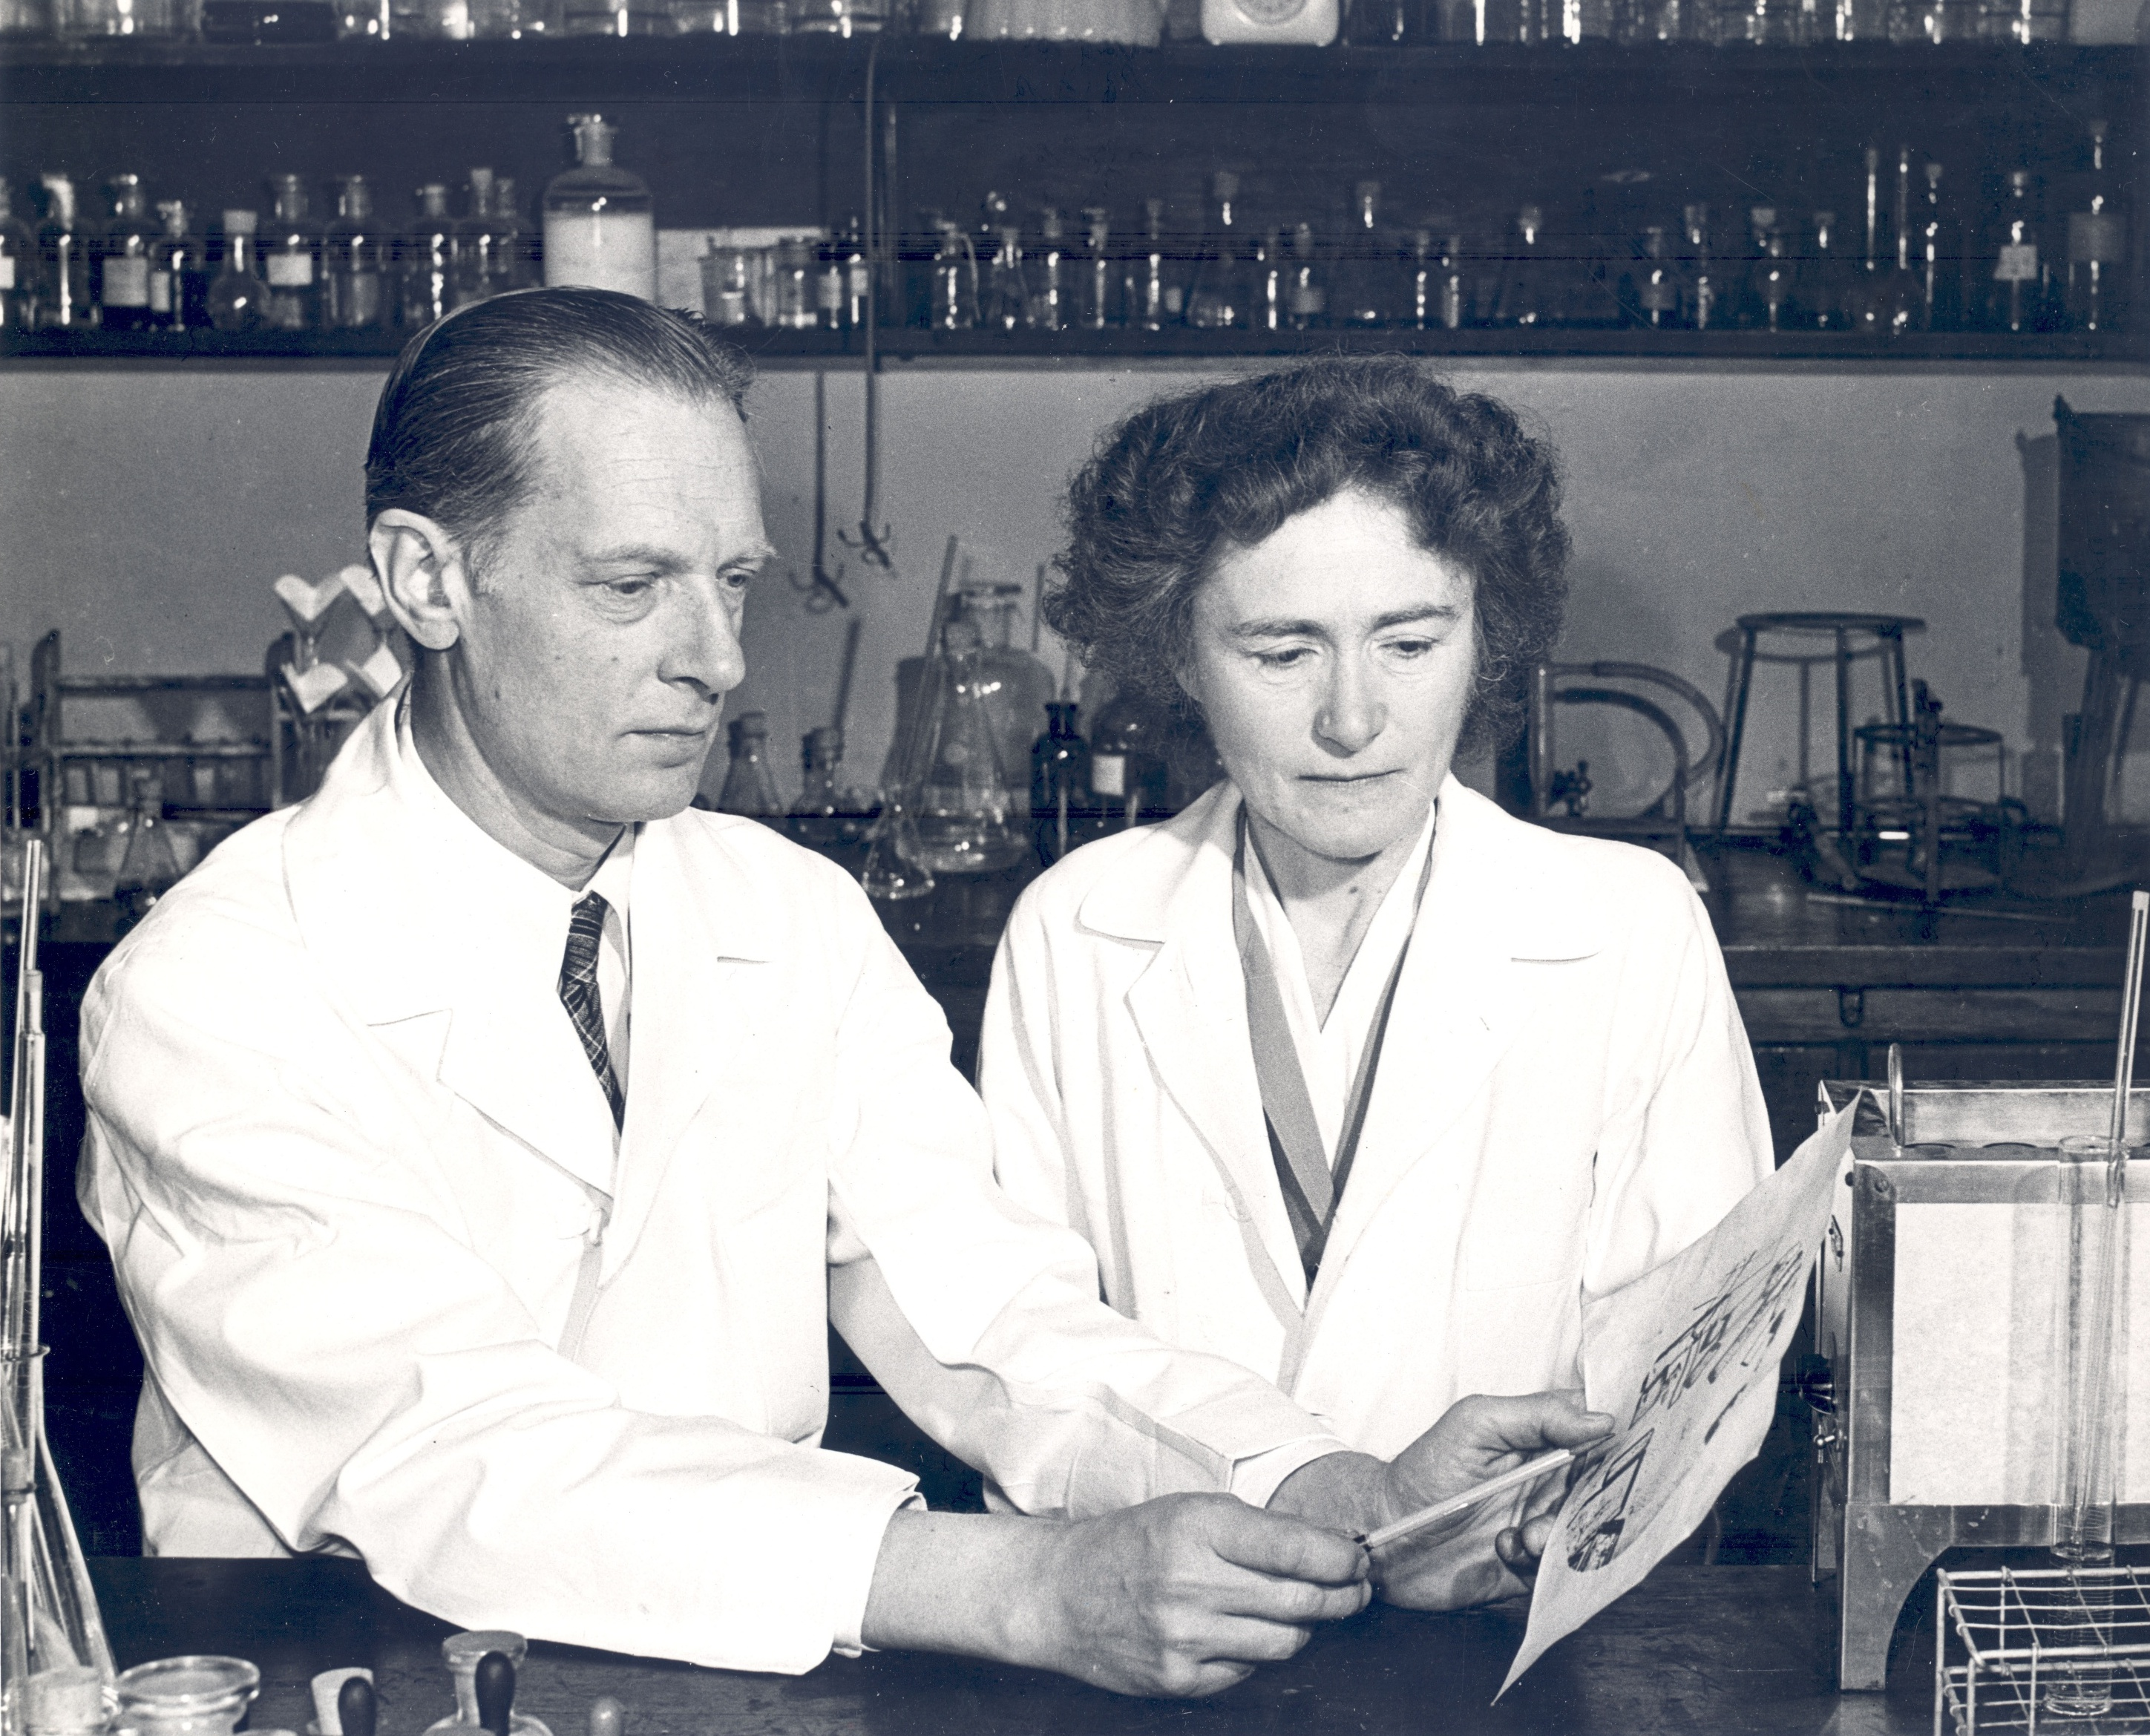 Carl F. and Gerty T. Cori in their lab at Washington University.